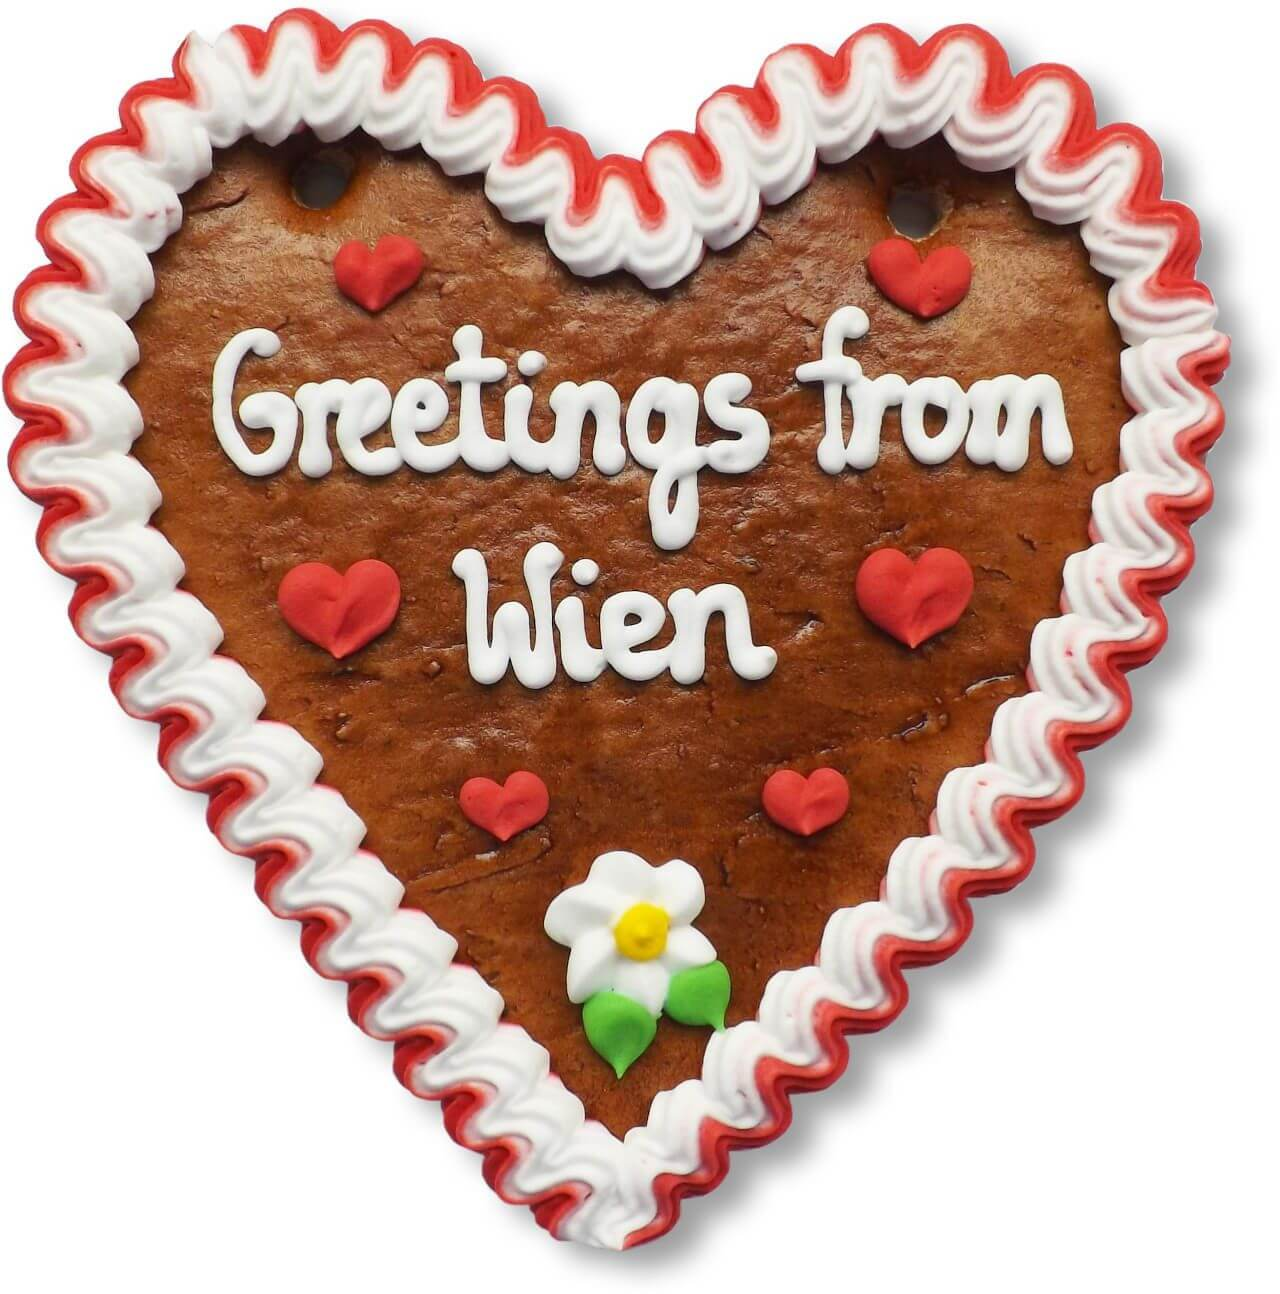 Greetings from Wien - Gingerbread Heart 16cm